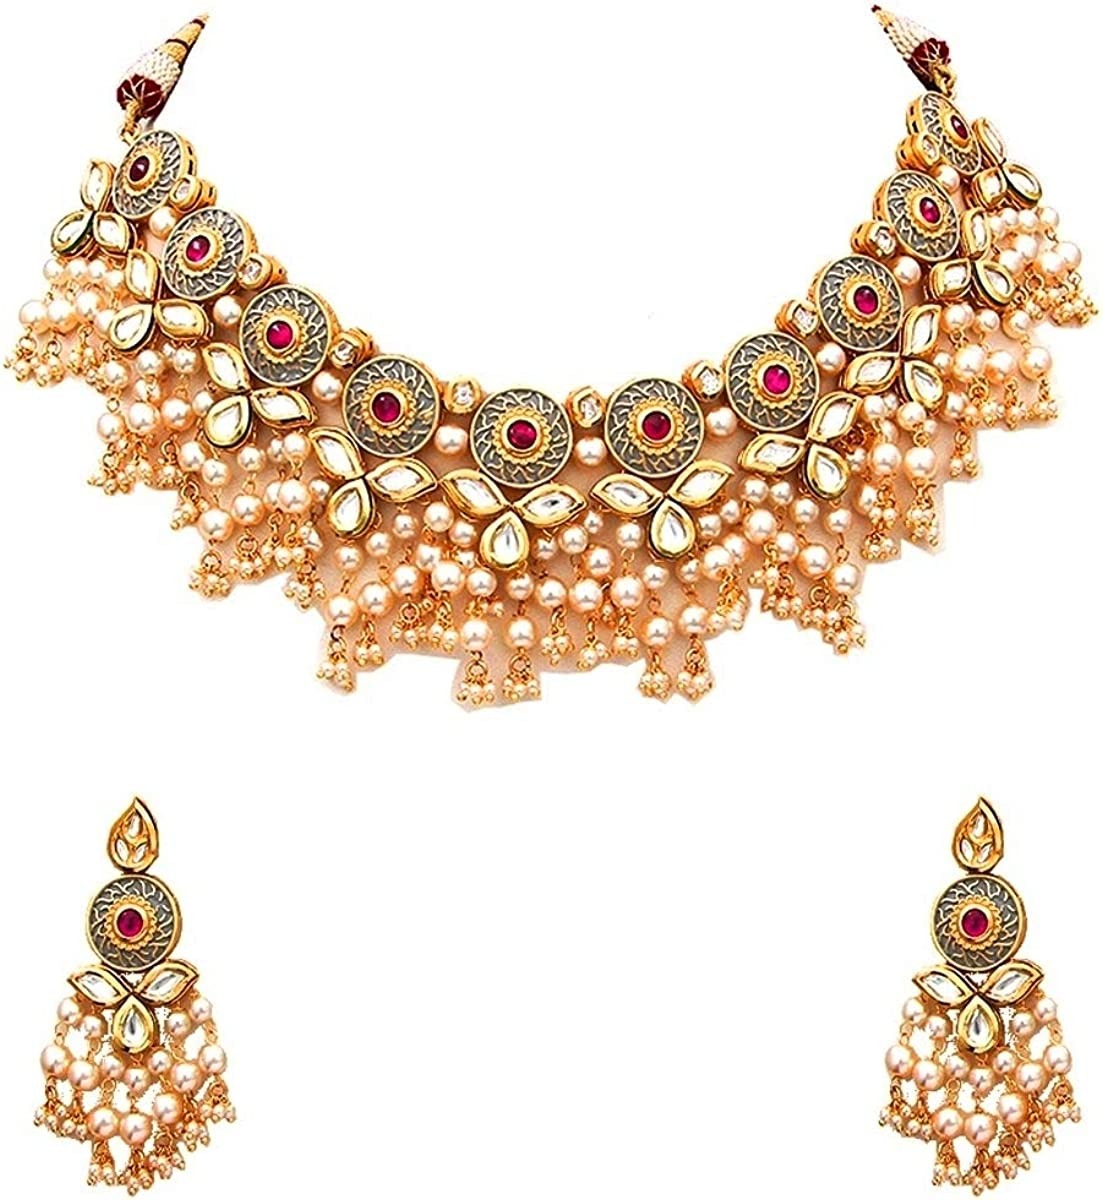 Gemsonclick Indian Traditional Choker Necklace Earrings Set Gold Plated Kundan Stone Handcrafted Fashion Jewellery for Women Girls